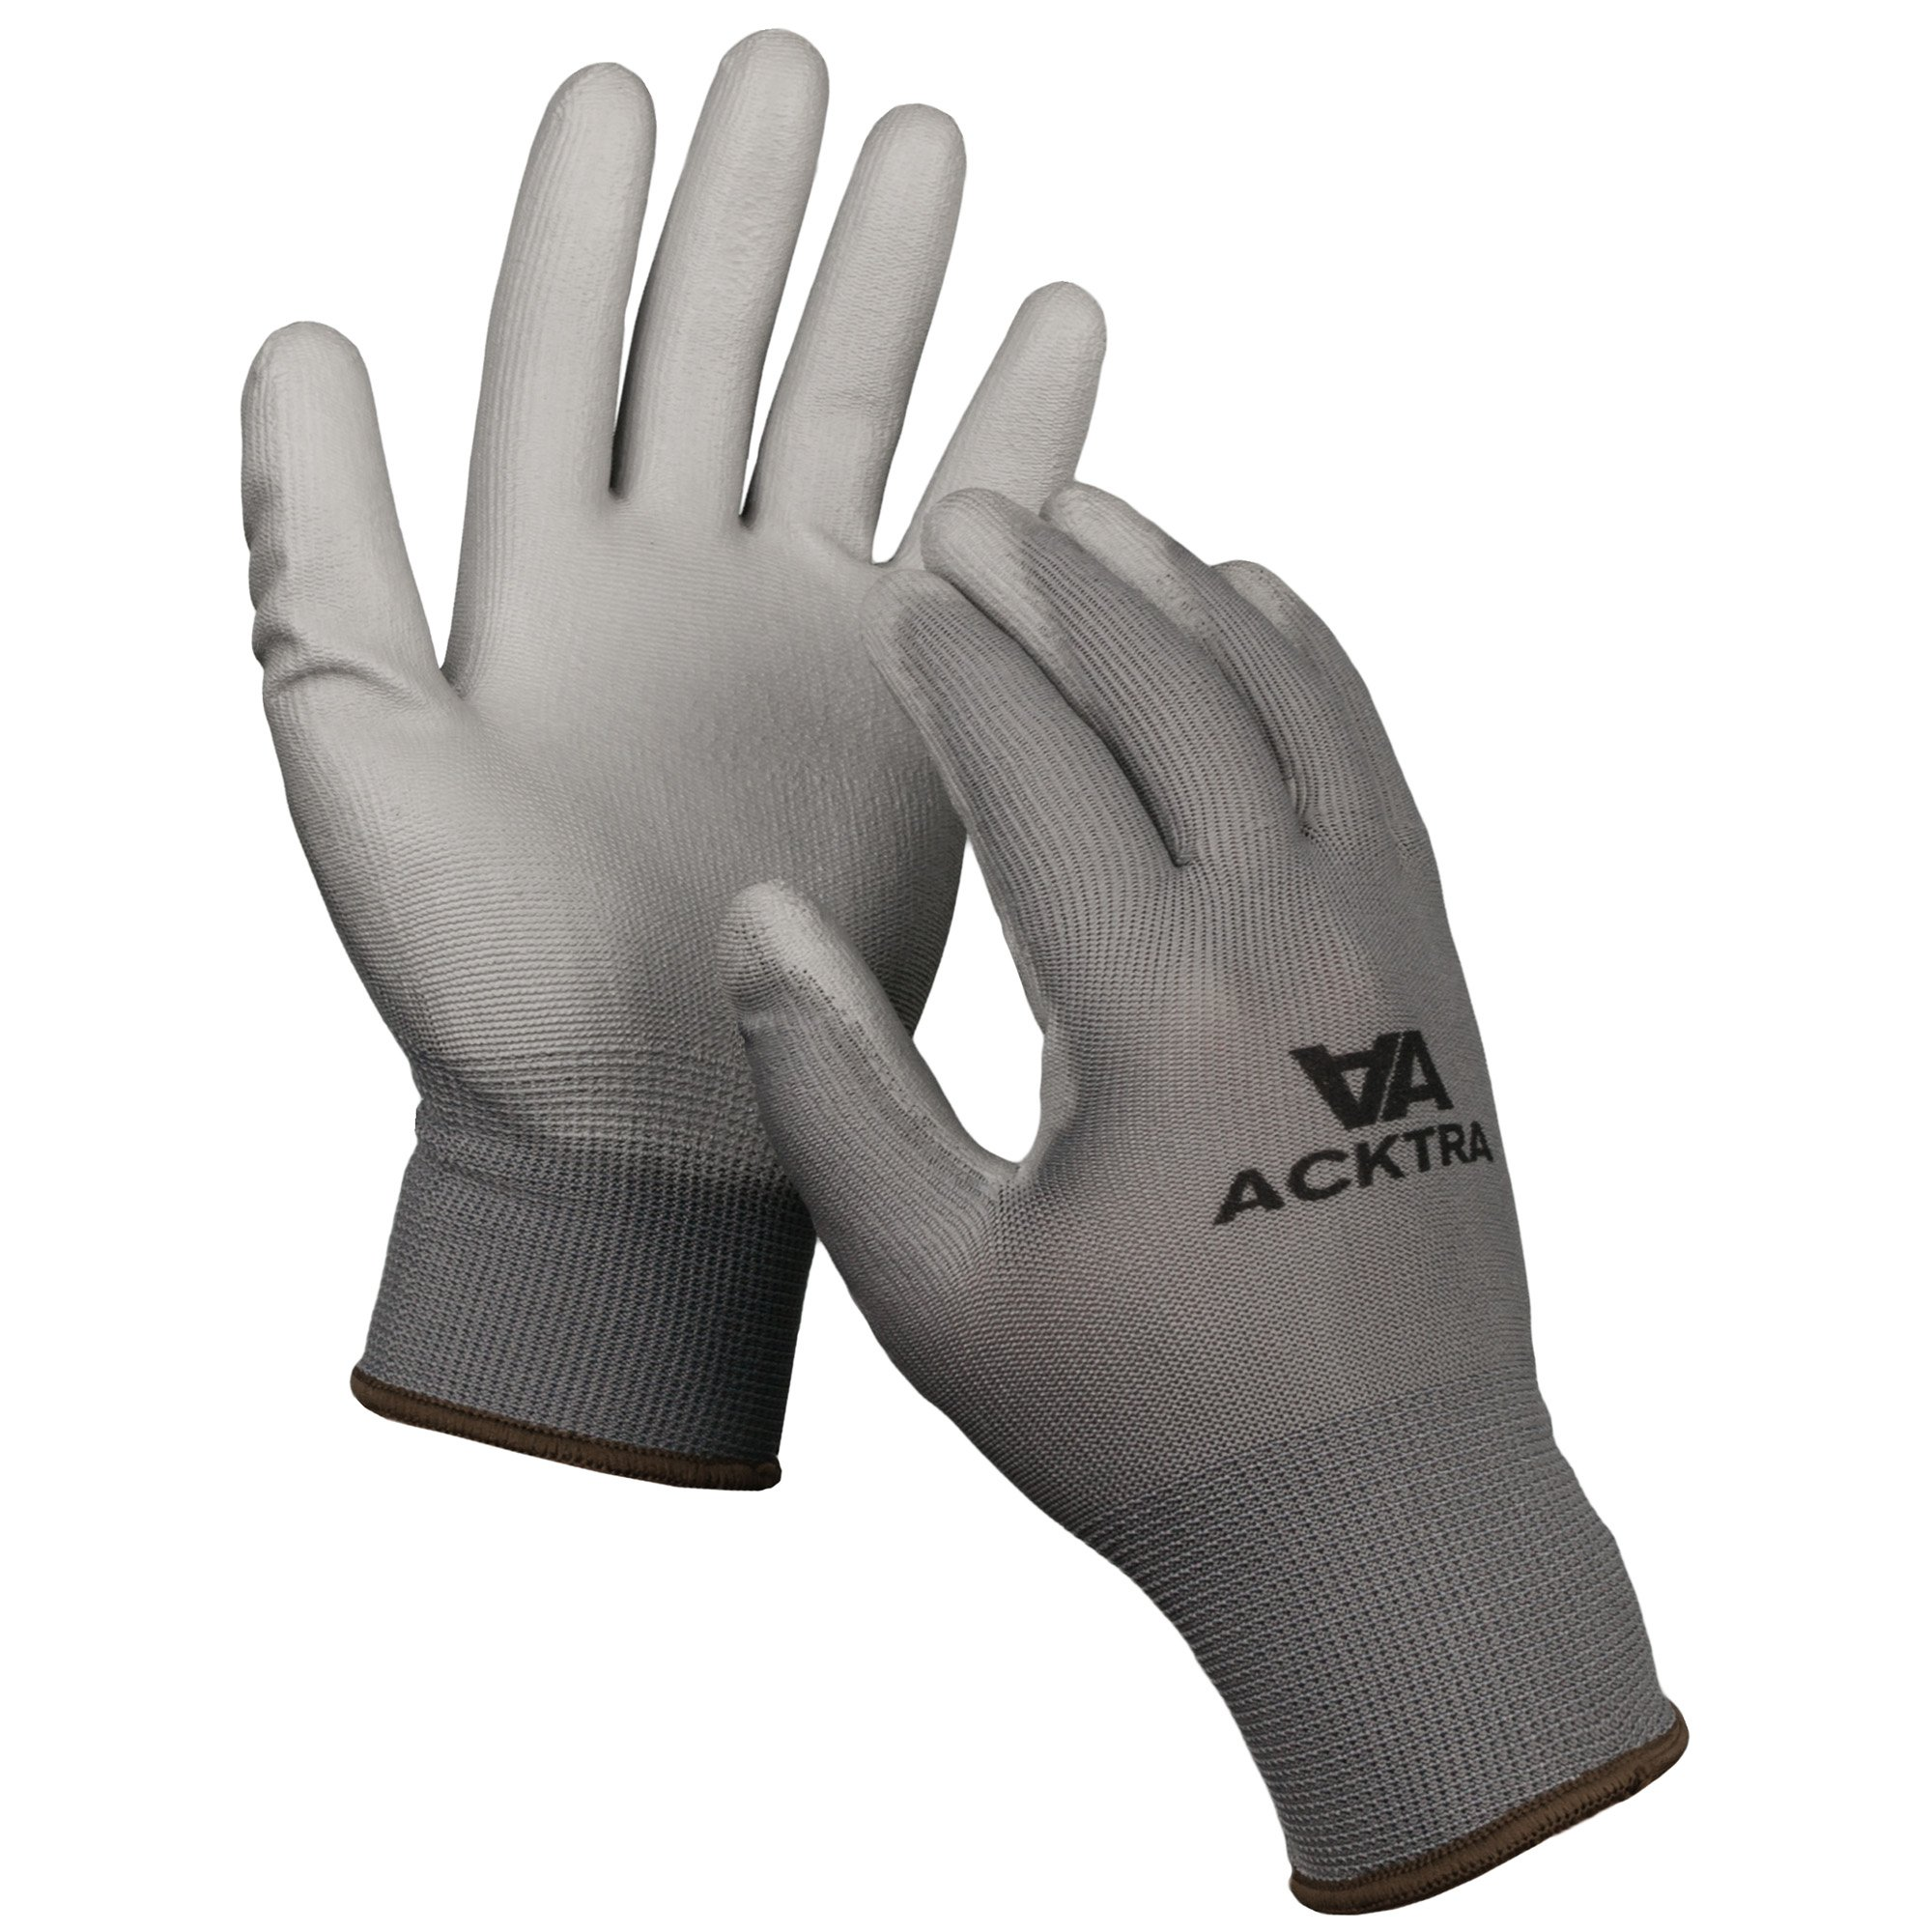 ACKTRA Ultra-Thin Polyurethane (PU) Coated Nylon Safety WORK GLOVES 12 Pairs, Knit Wrist Cuff, for Precision Work, for…